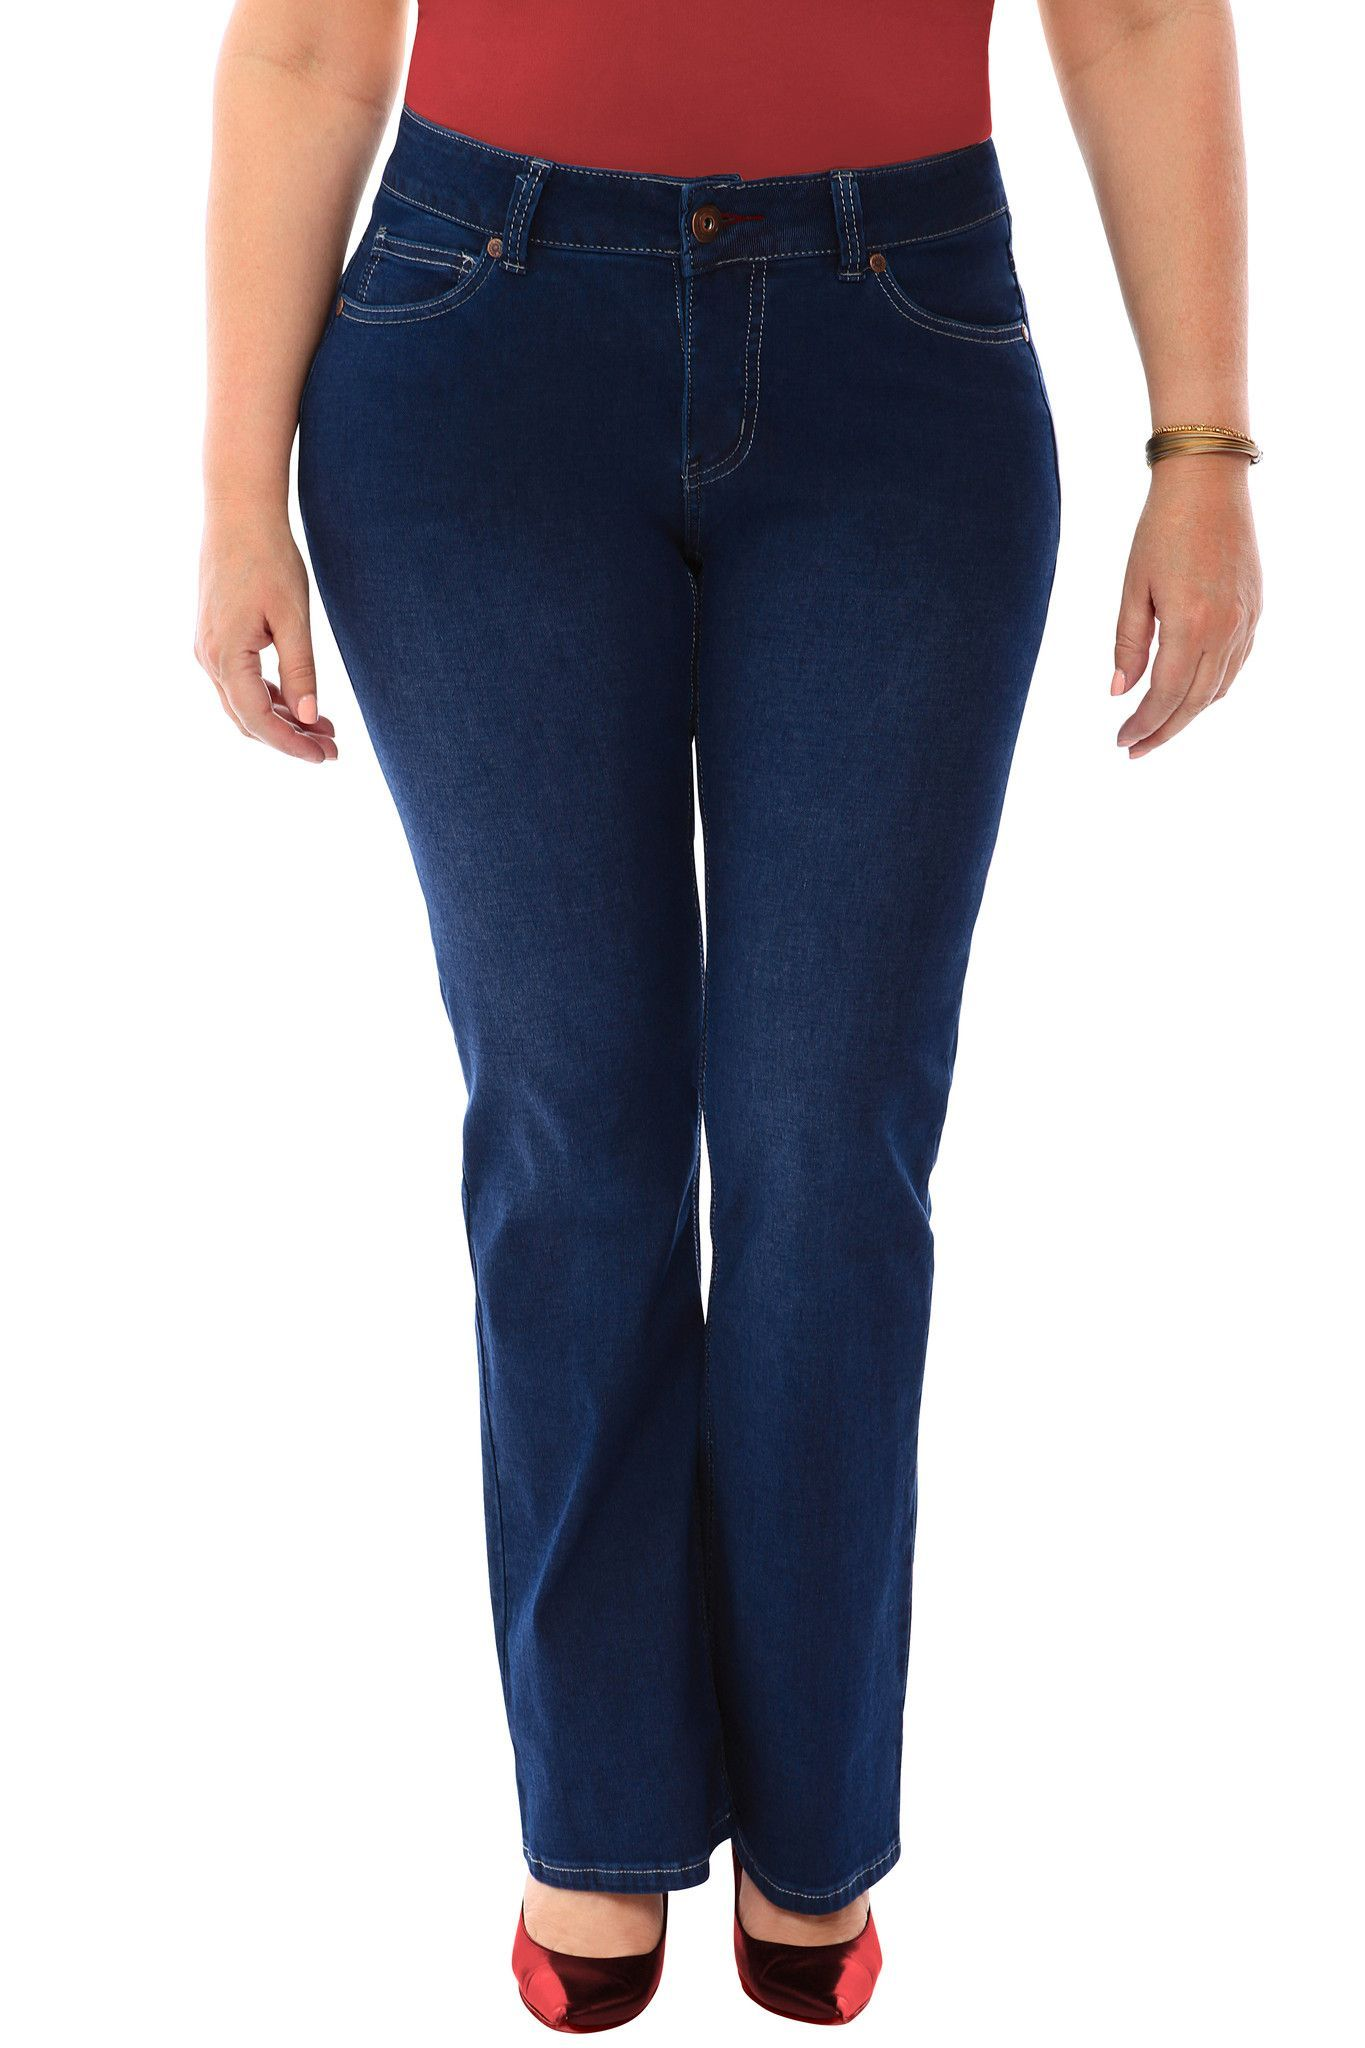 360 Stretch MidRise Straight Denim Jeans in Blue Depths